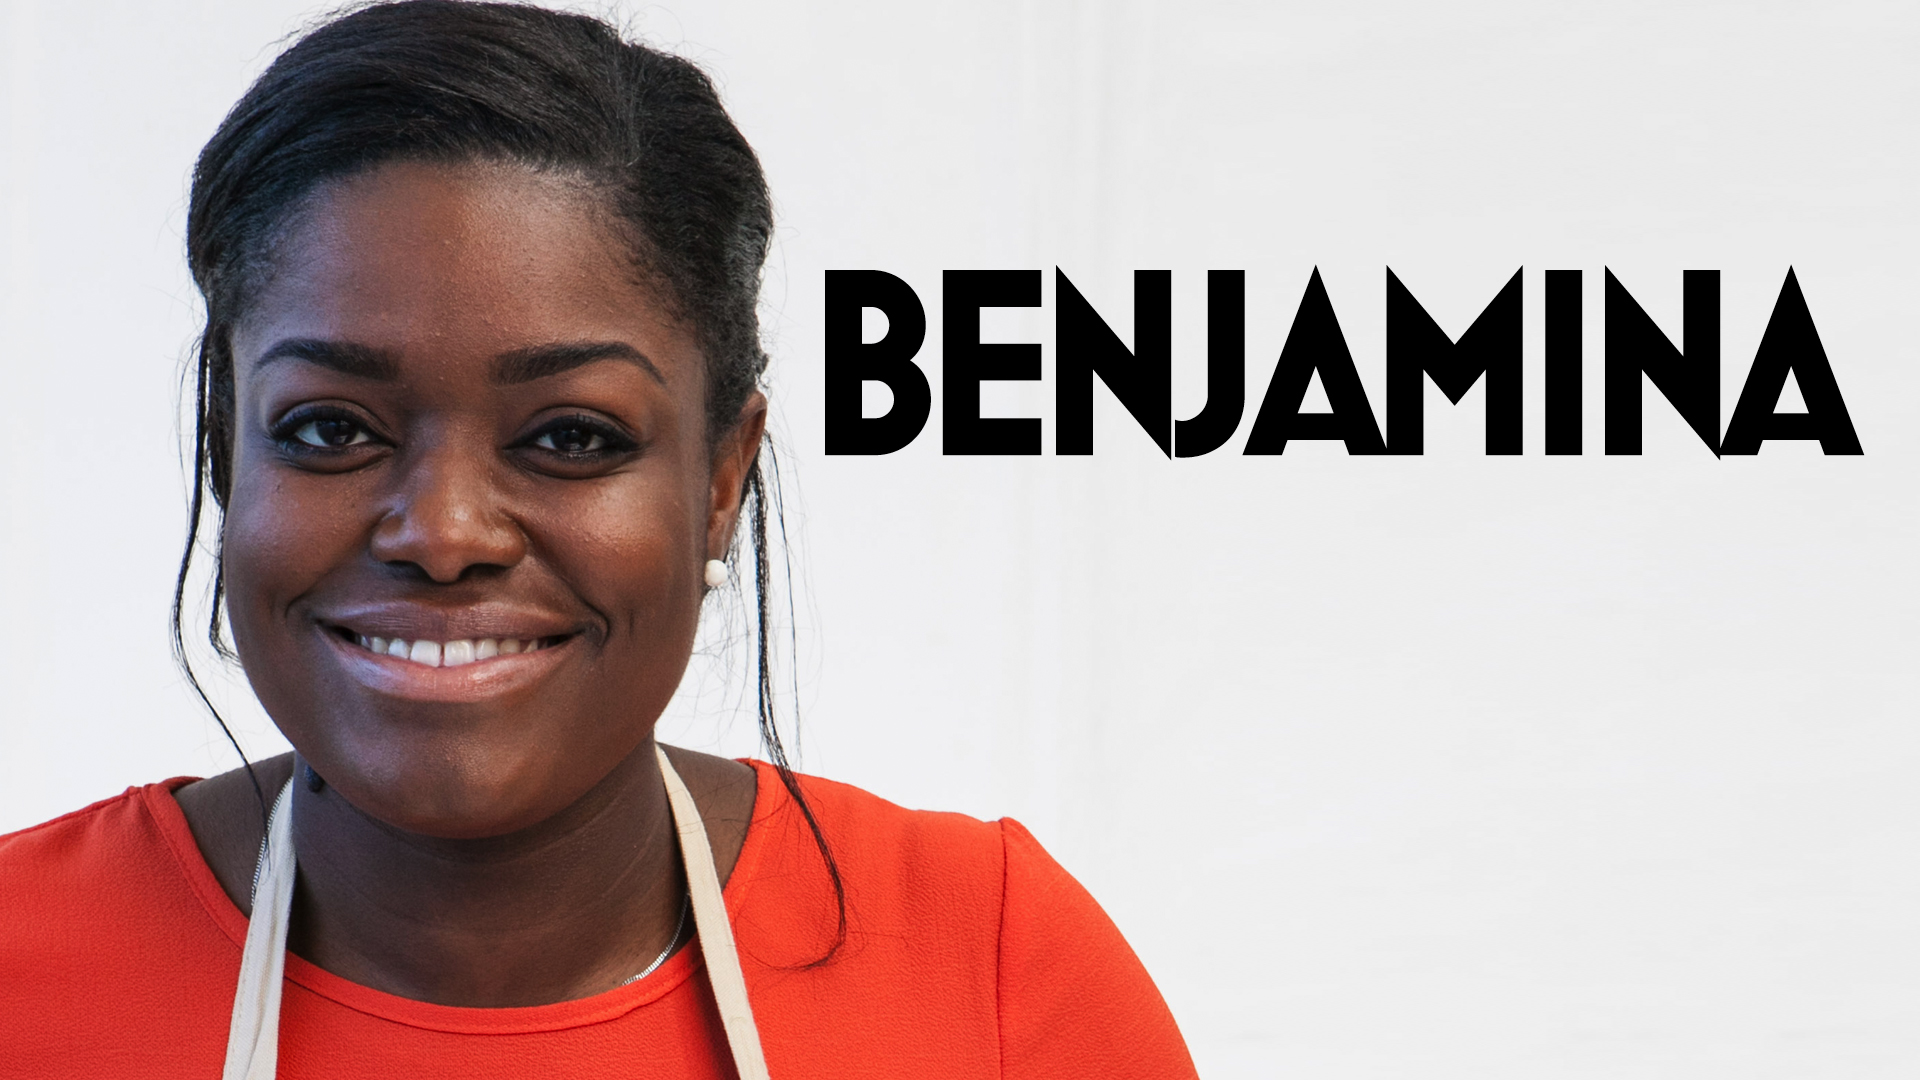 Great-British-Baking-Show-Bakers-Benjamina